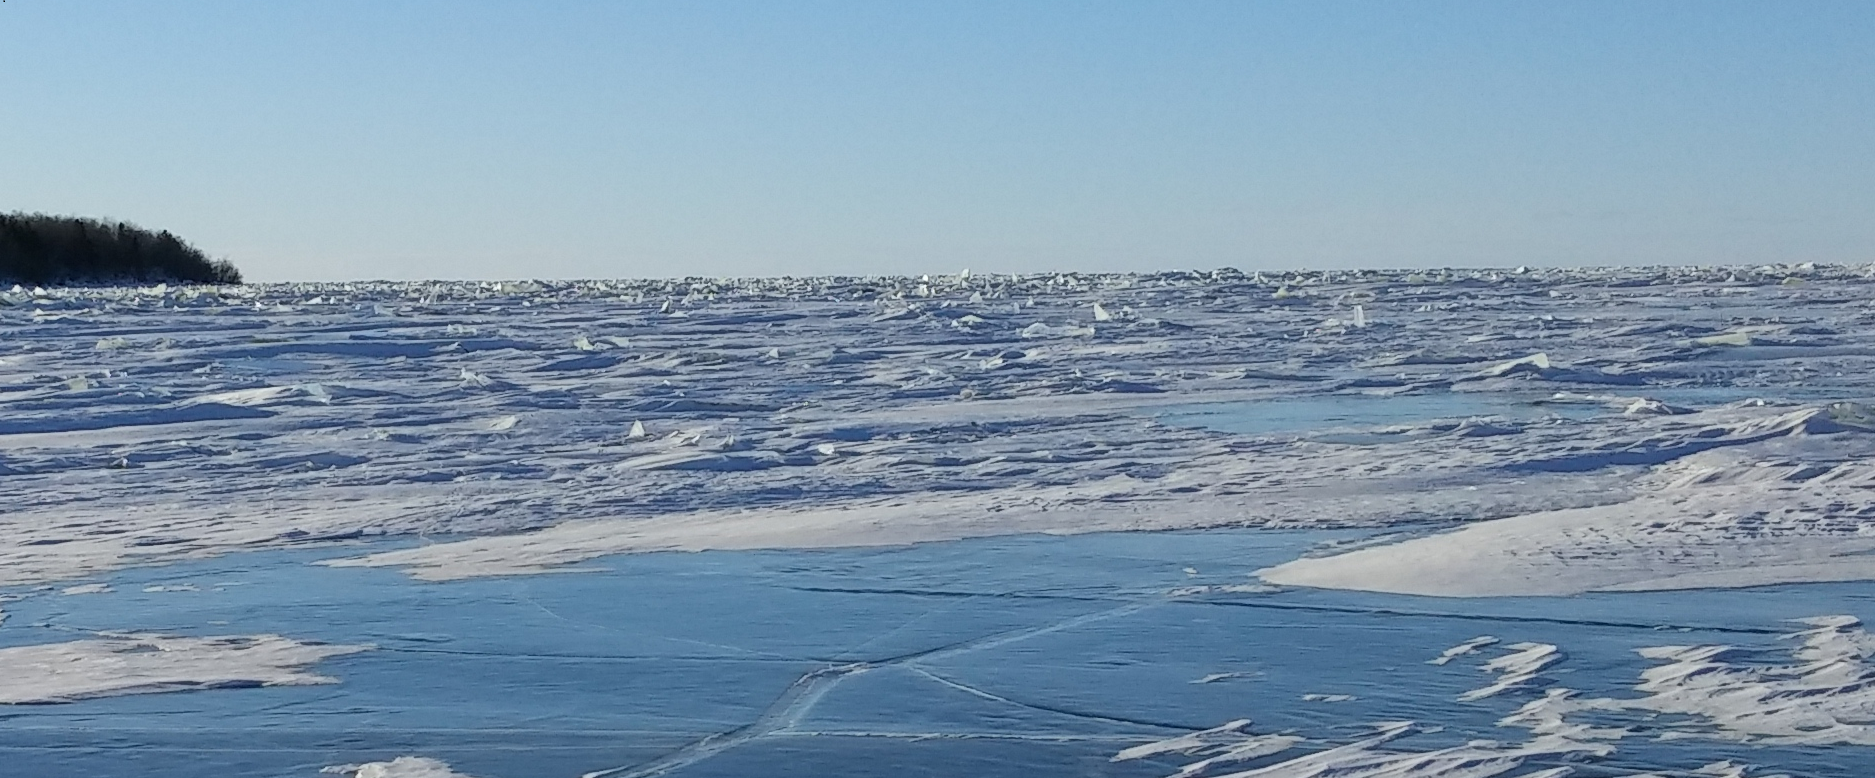 Rubble ice fields are seldom navigable and can be large. Maps of rubble fields improve routing access for lake ice travel by citizens and first responders.